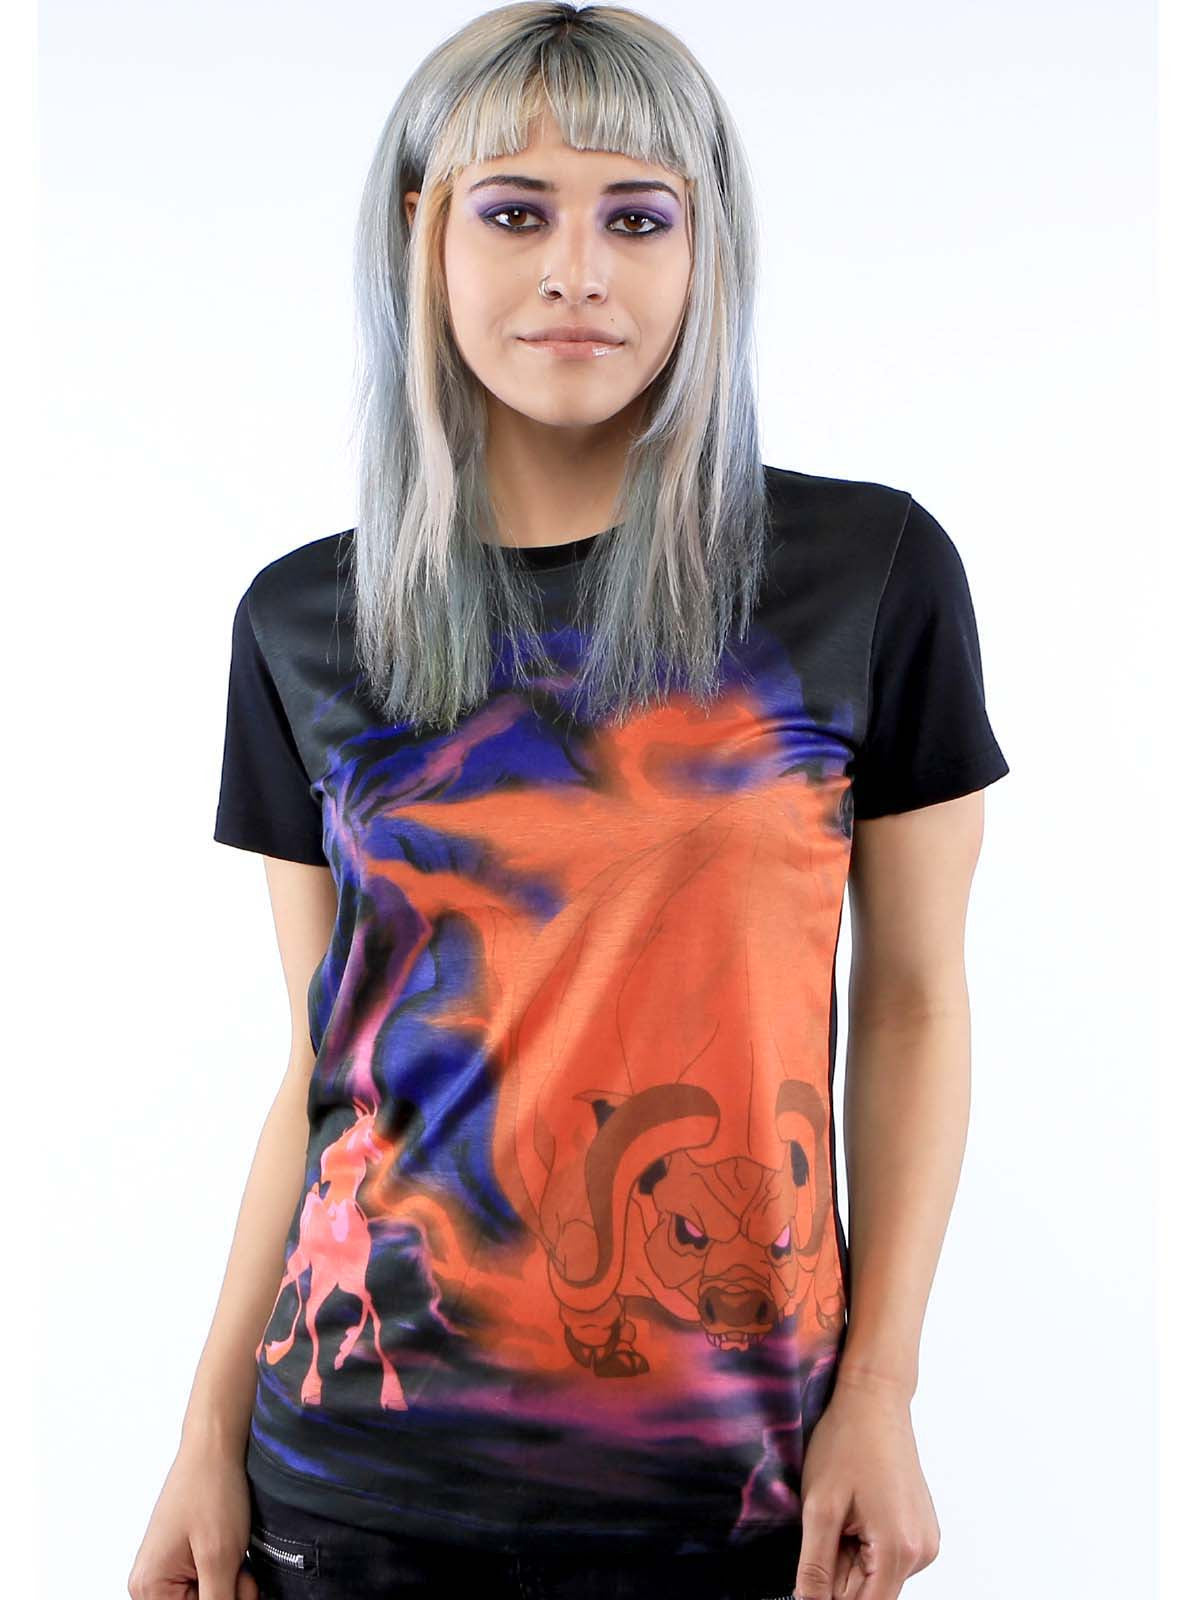 The Last Unicorn Stand Off Tee  OFFICIALLY LICENSED! – NewBreedGirl ... d3f3cc47ce4a